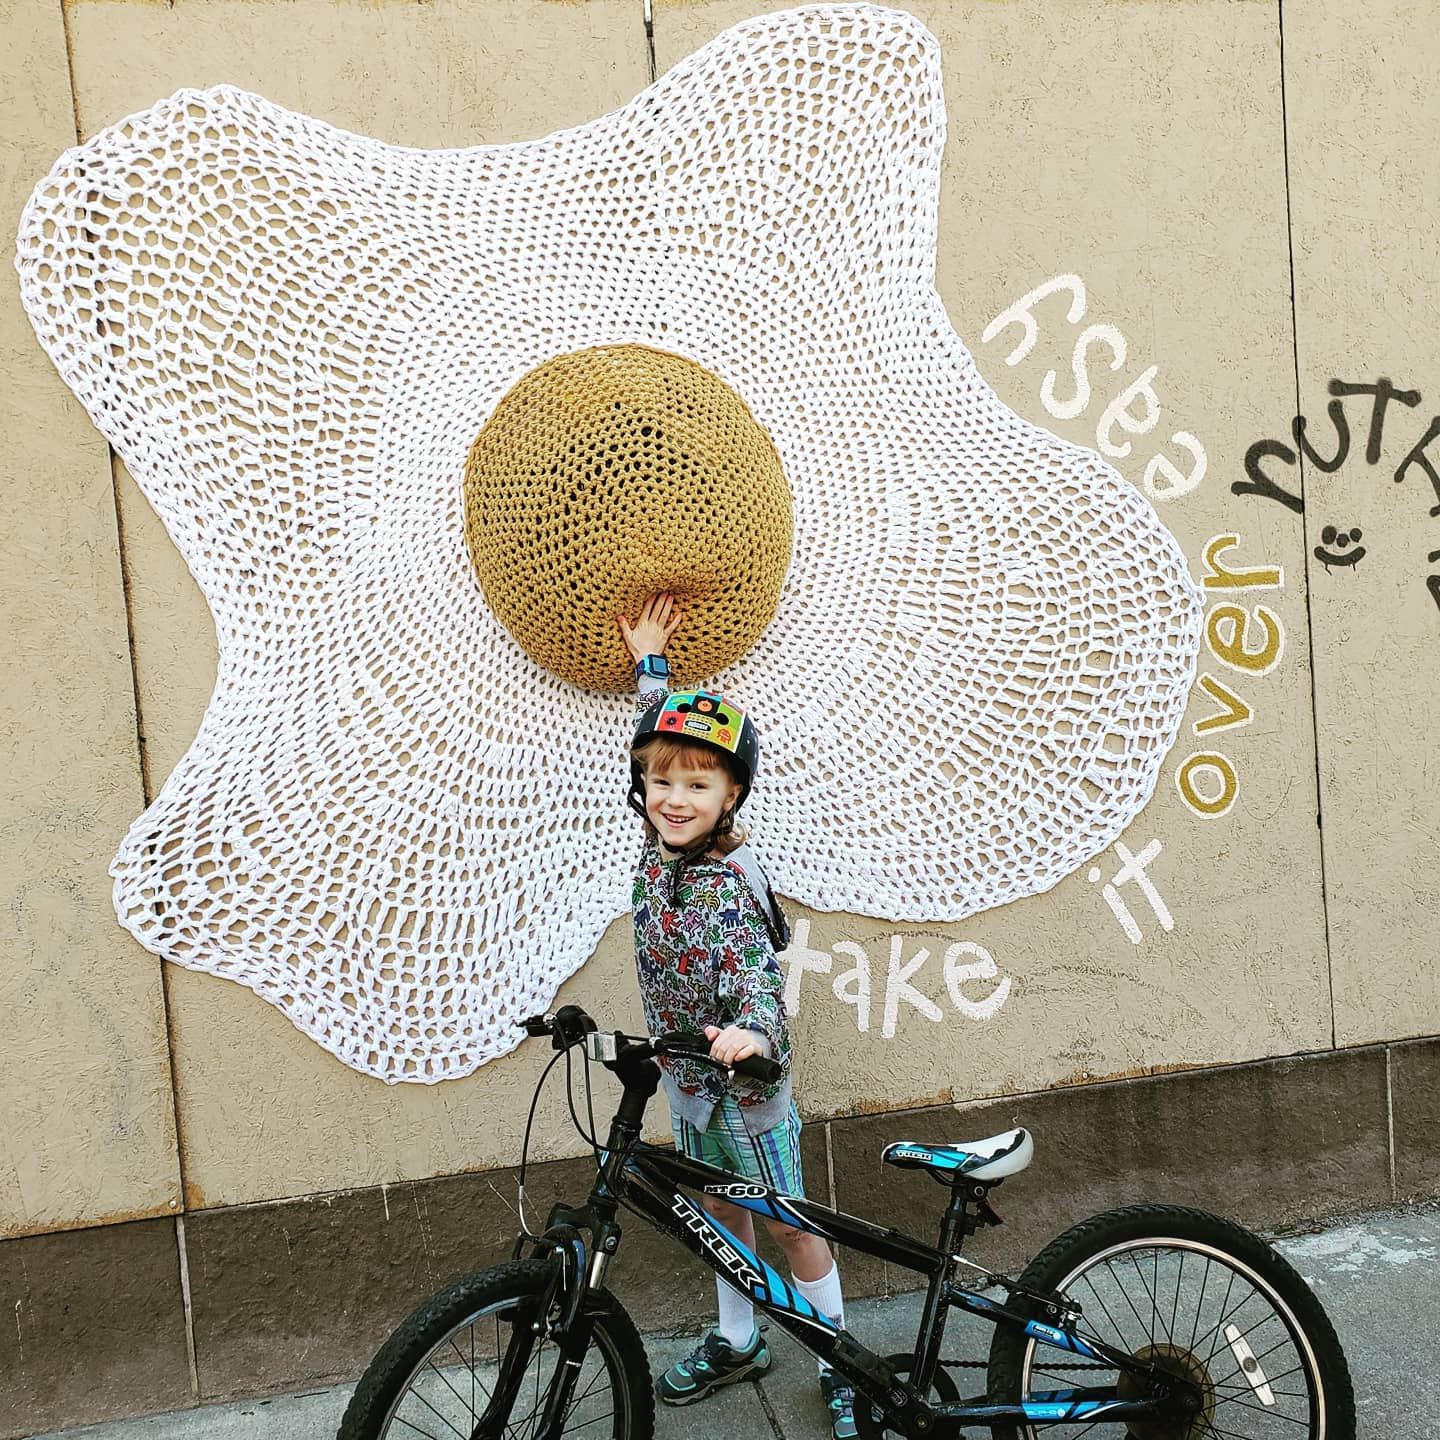 take it over easy. littlest one, thrilled for gears + a ride into Center City